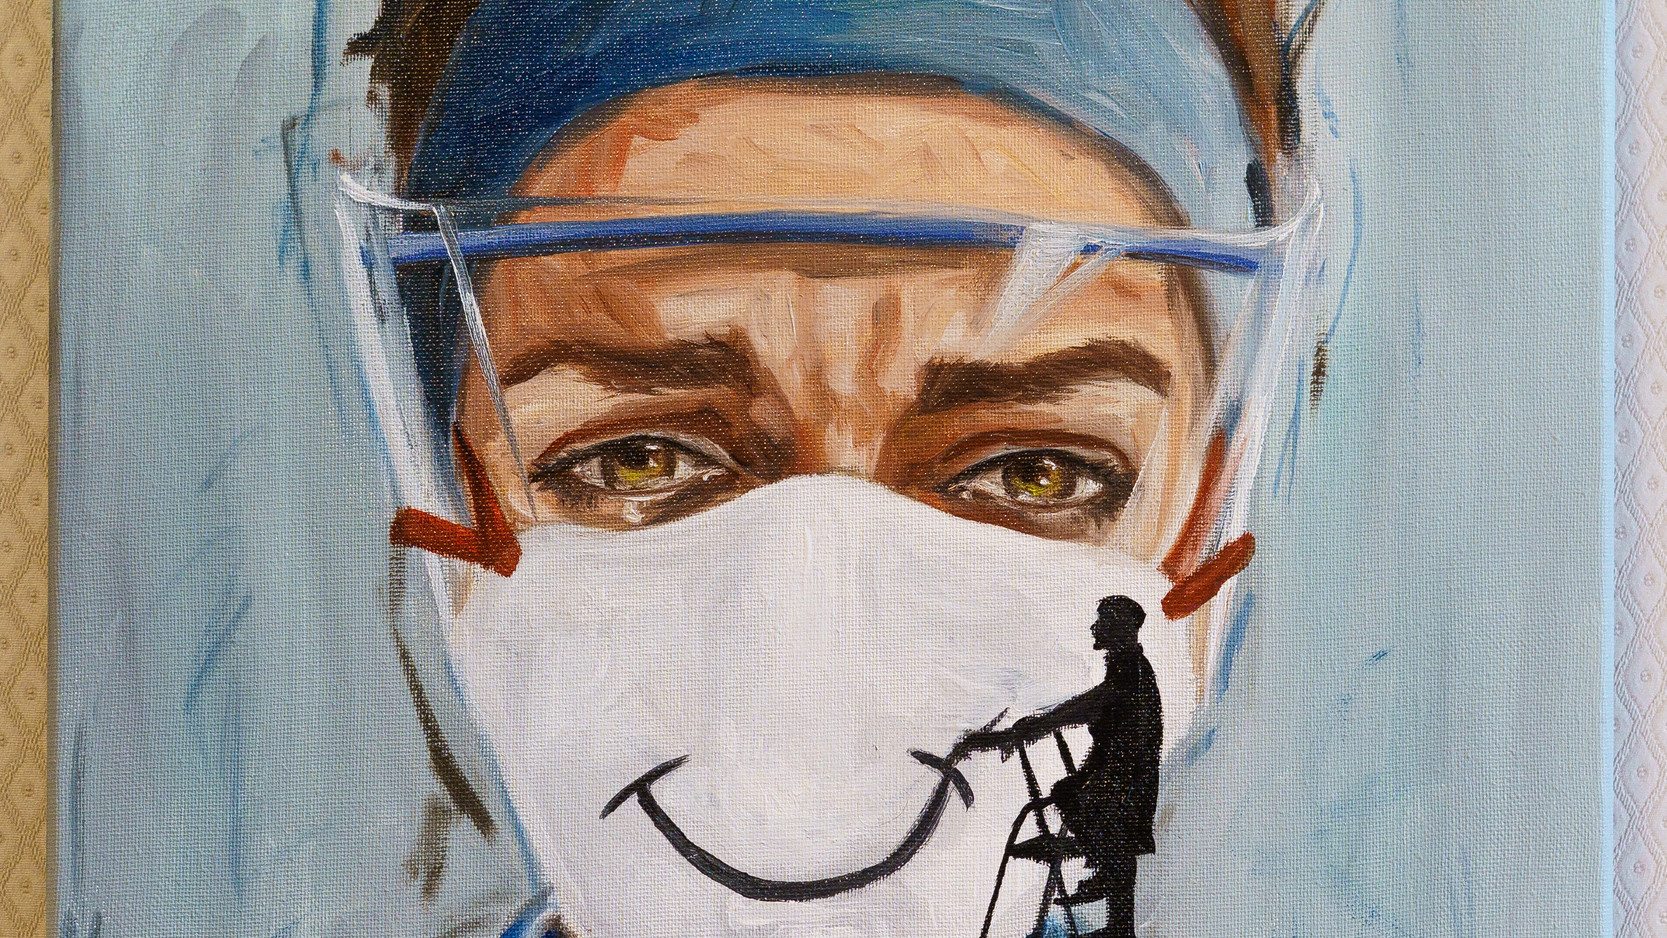 Rebecca Wright - 'Painting on a smile' - FINALIST